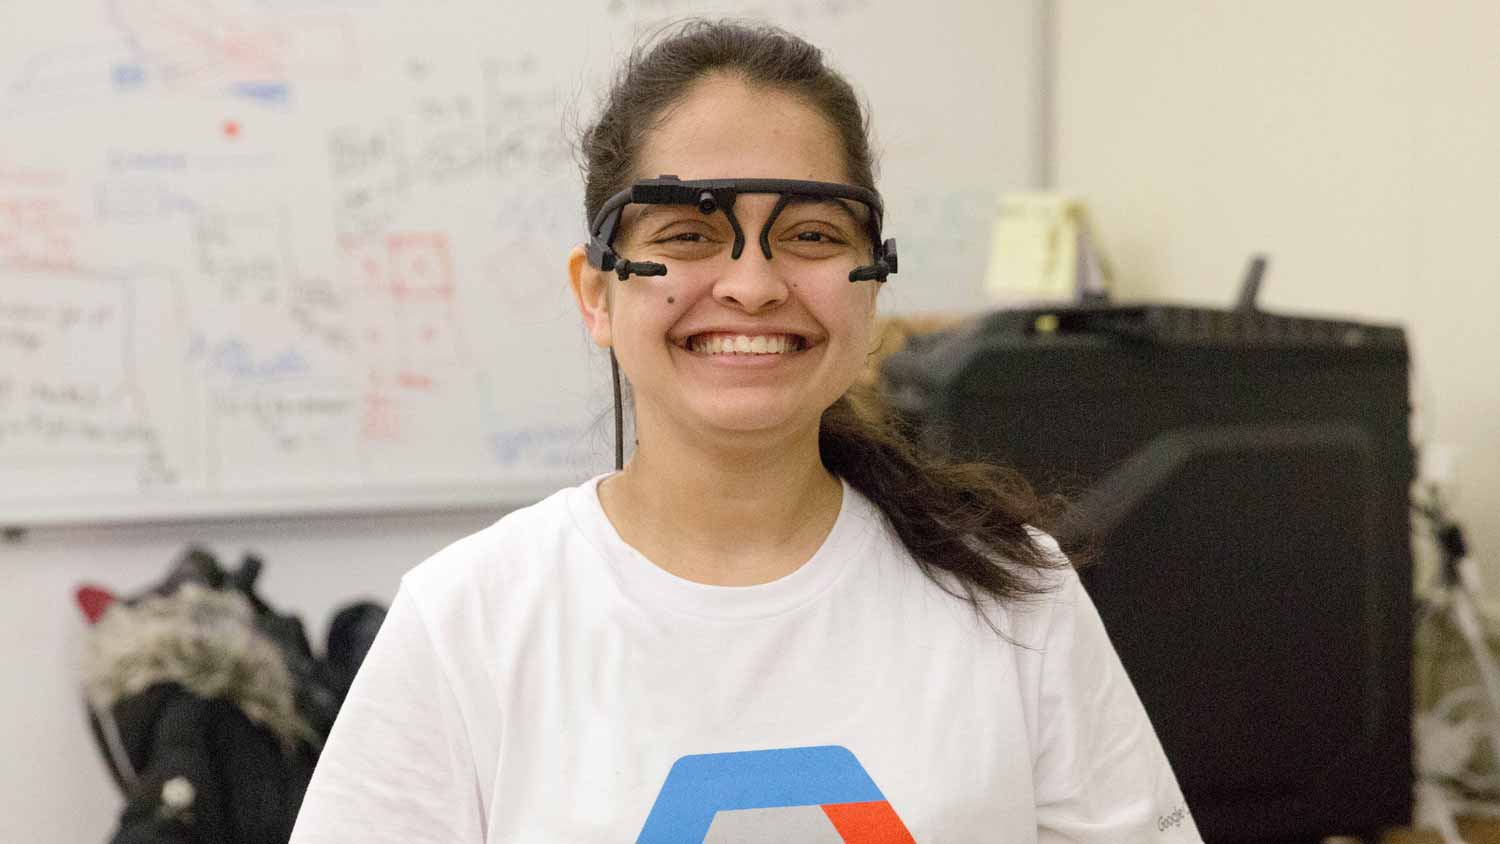 Student smiling while wearing   prototype glasses